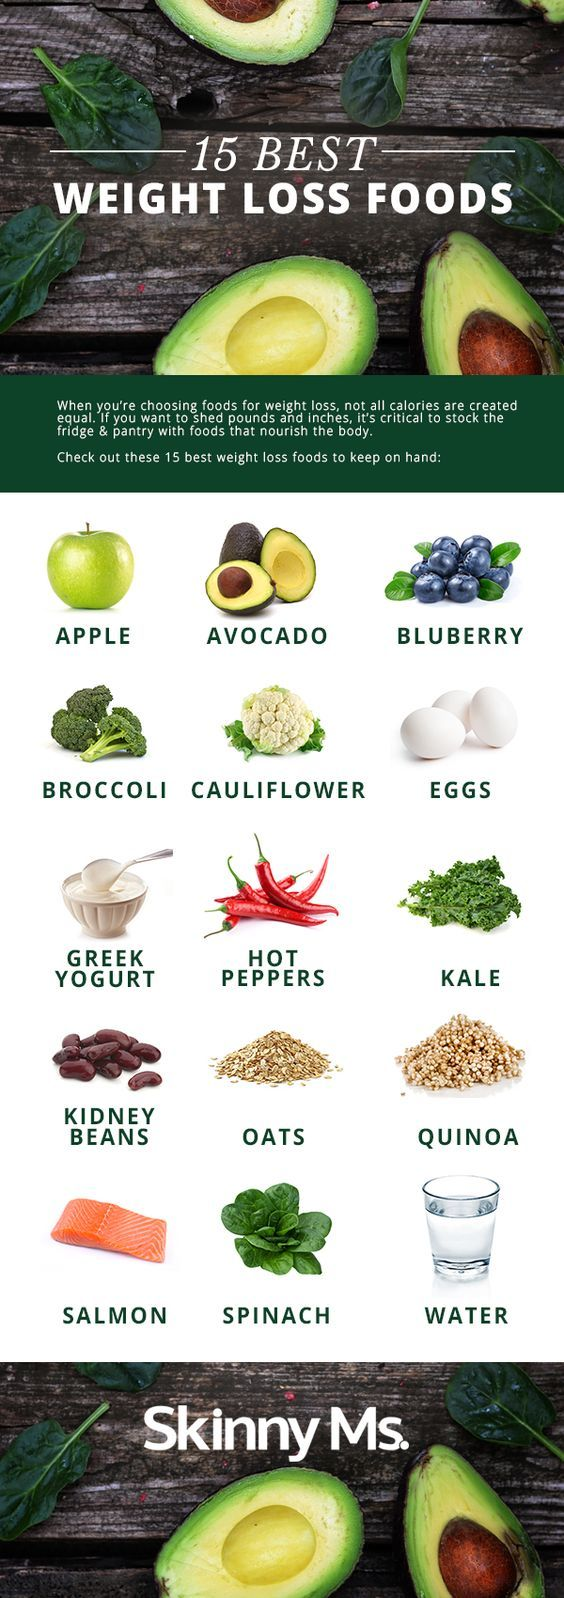 Get the skinny on the foods that you need to eat to lose weight - http://www.naturalhealthtrend.com/the-15-best-weight-loss-foods/